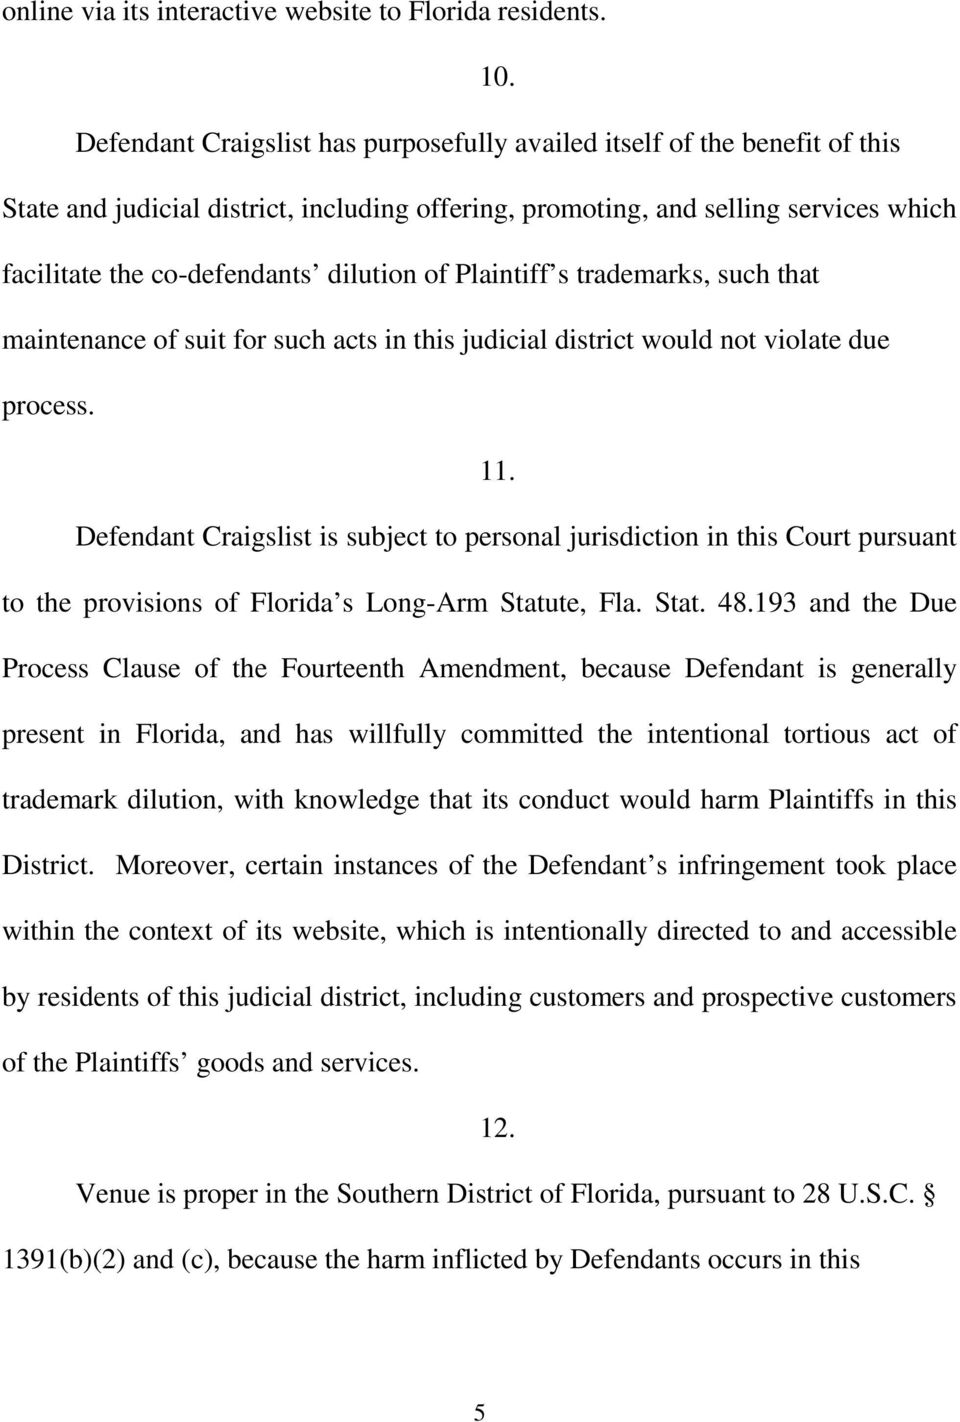 dilution of Plaintiff s trademarks, such that maintenance of suit for such acts in this judicial district would not violate due process. 11.